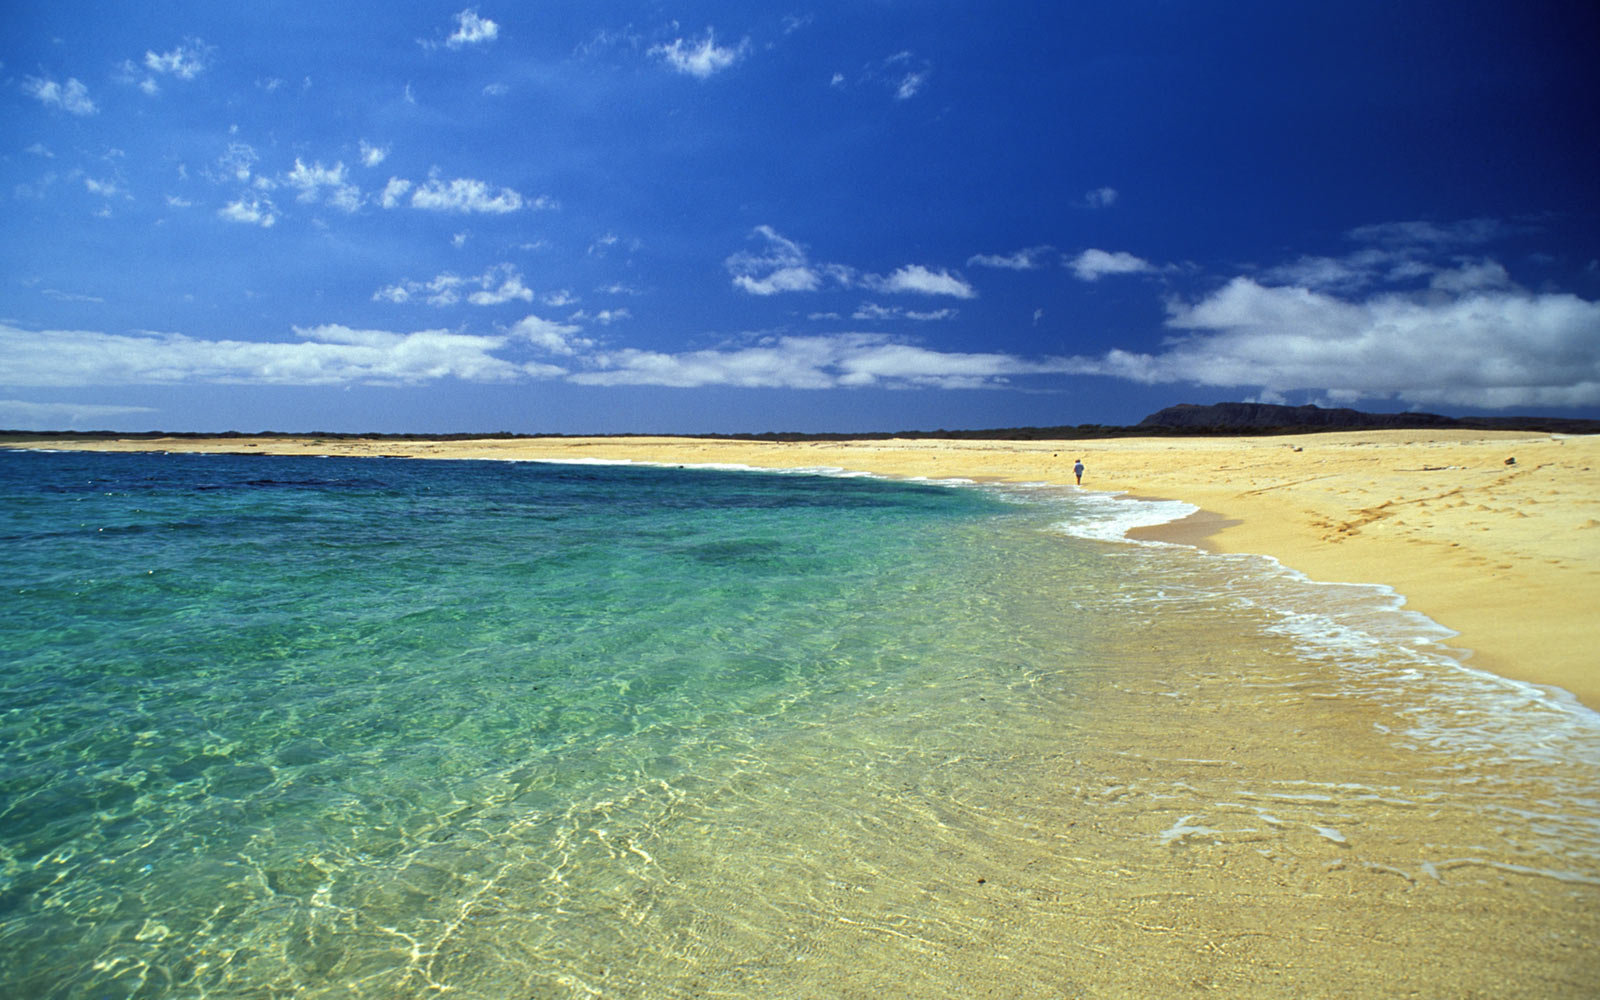 hawaiian islands Find great deals on hawaii cruise packages at carnival book your hawaii cruise vacation today and get great discounts on cruises to the hawaiian islands.